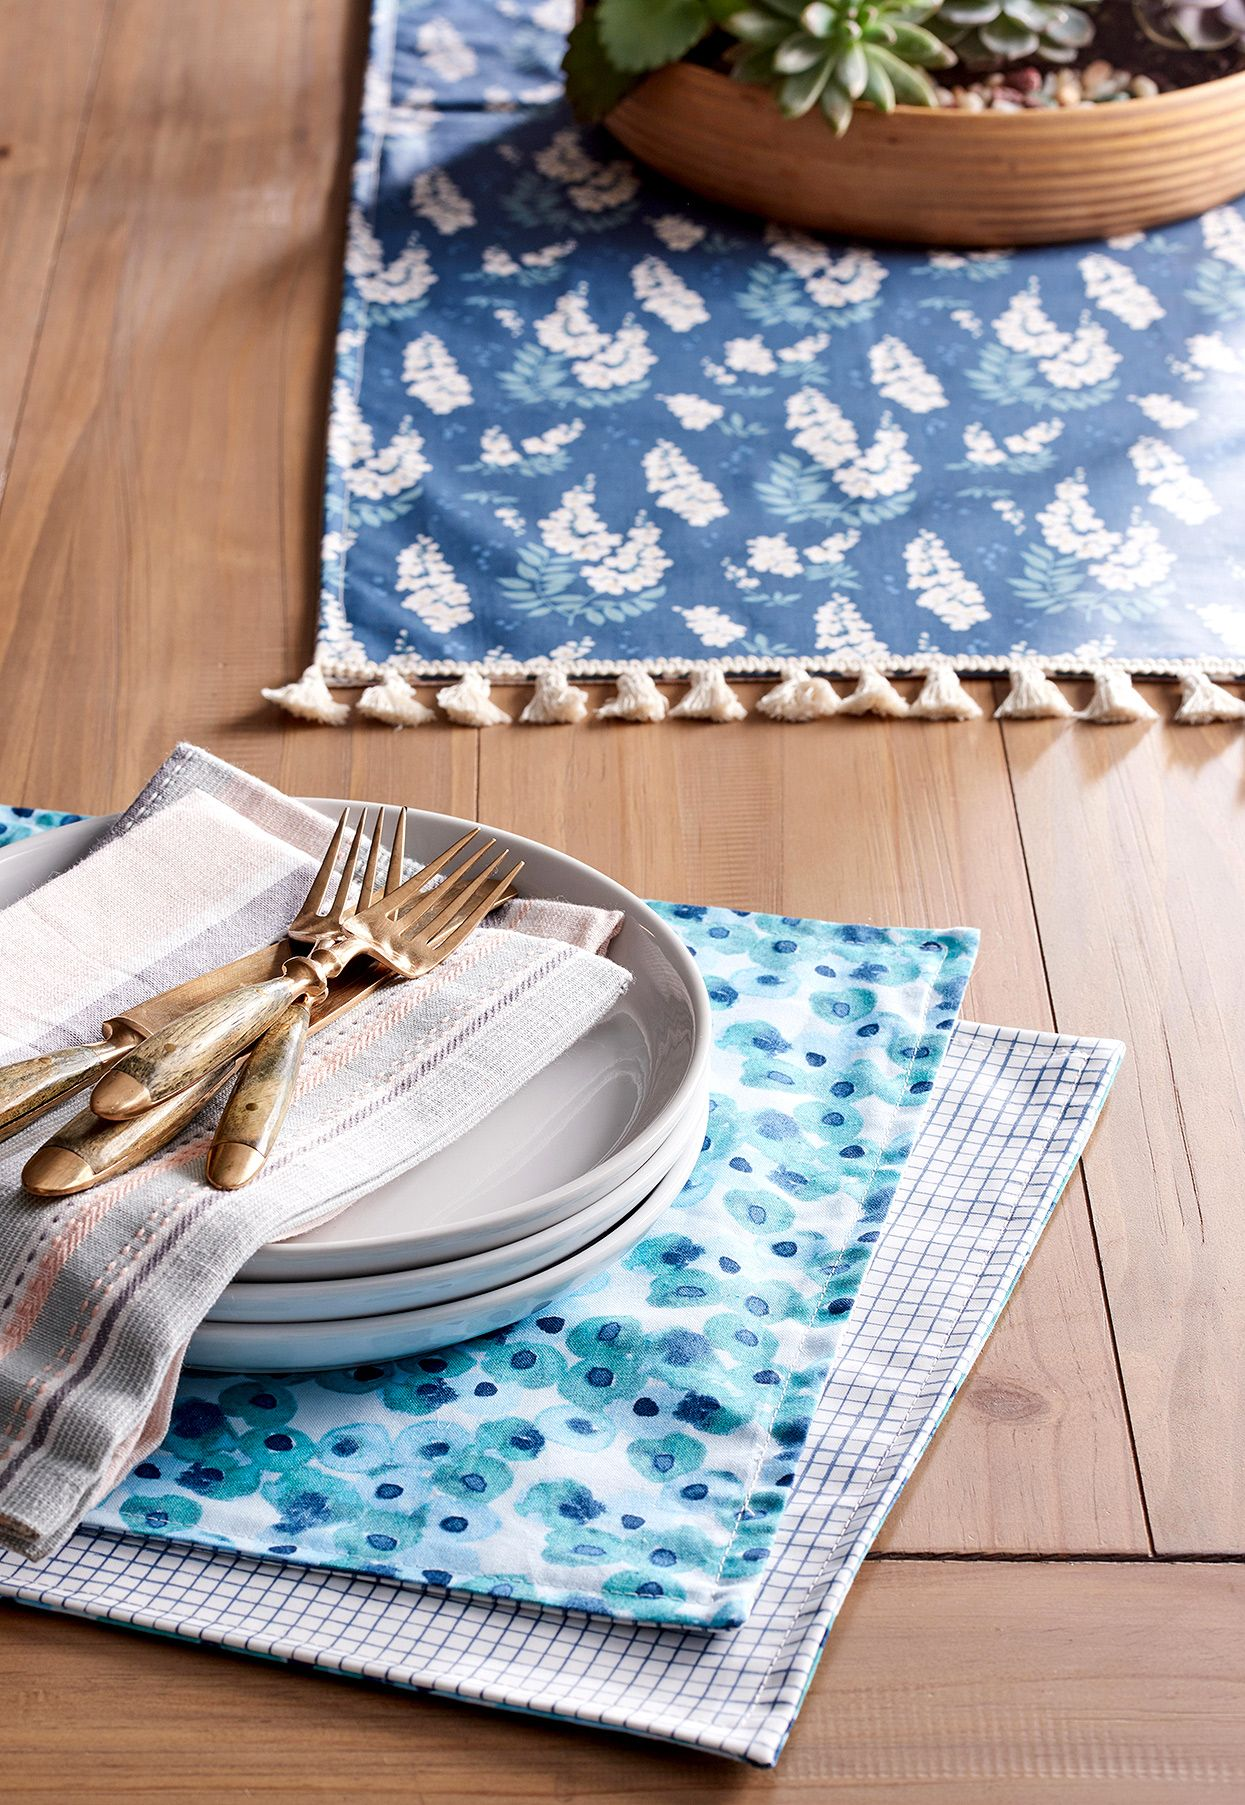 Make An Oilcloth Table Runner In Just 30 Minutes Easy Sewing Projects Oil Cloth Diy Placemats